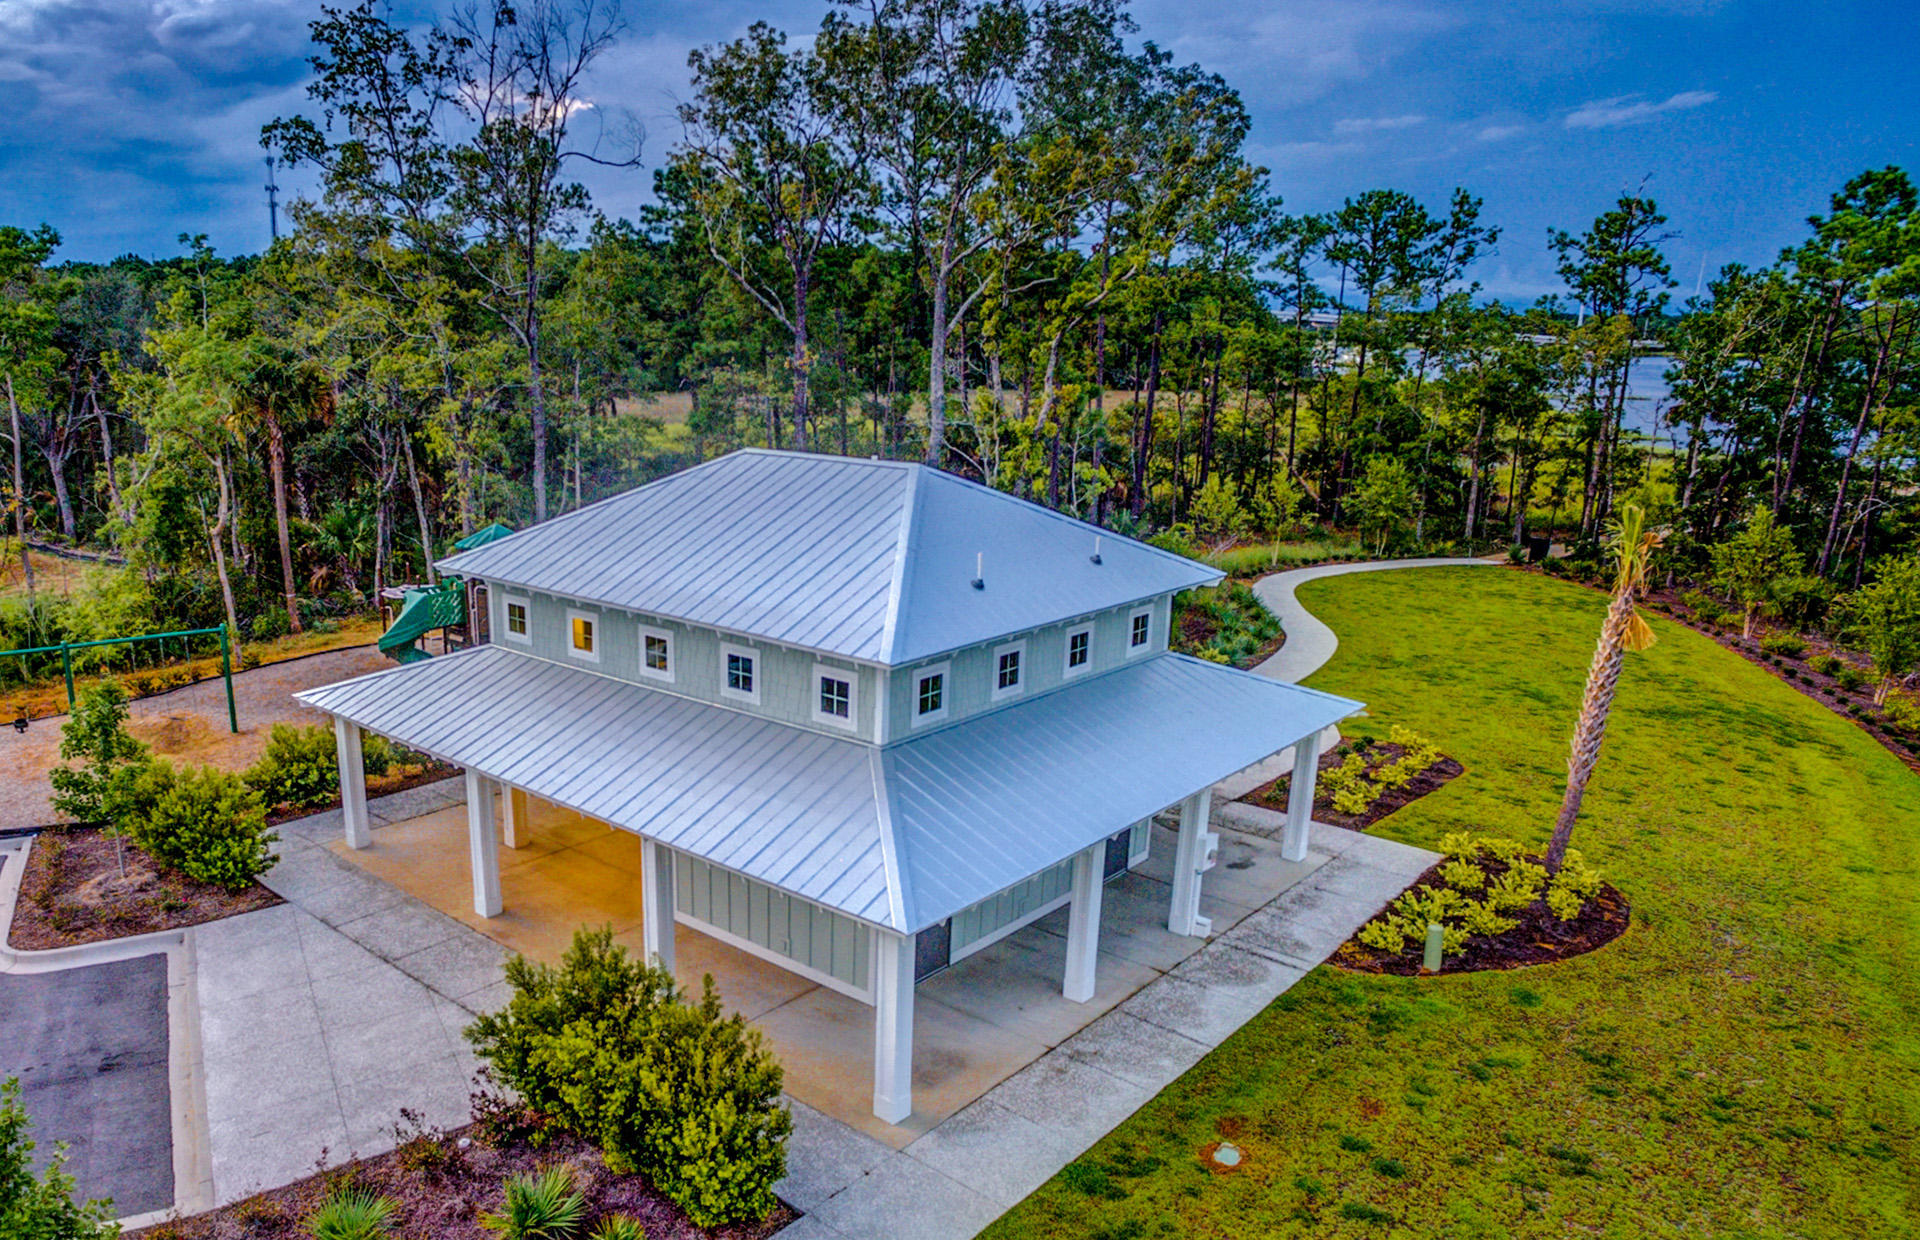 Dunes West Homes For Sale - 2950 Clearwater, Mount Pleasant, SC - 6